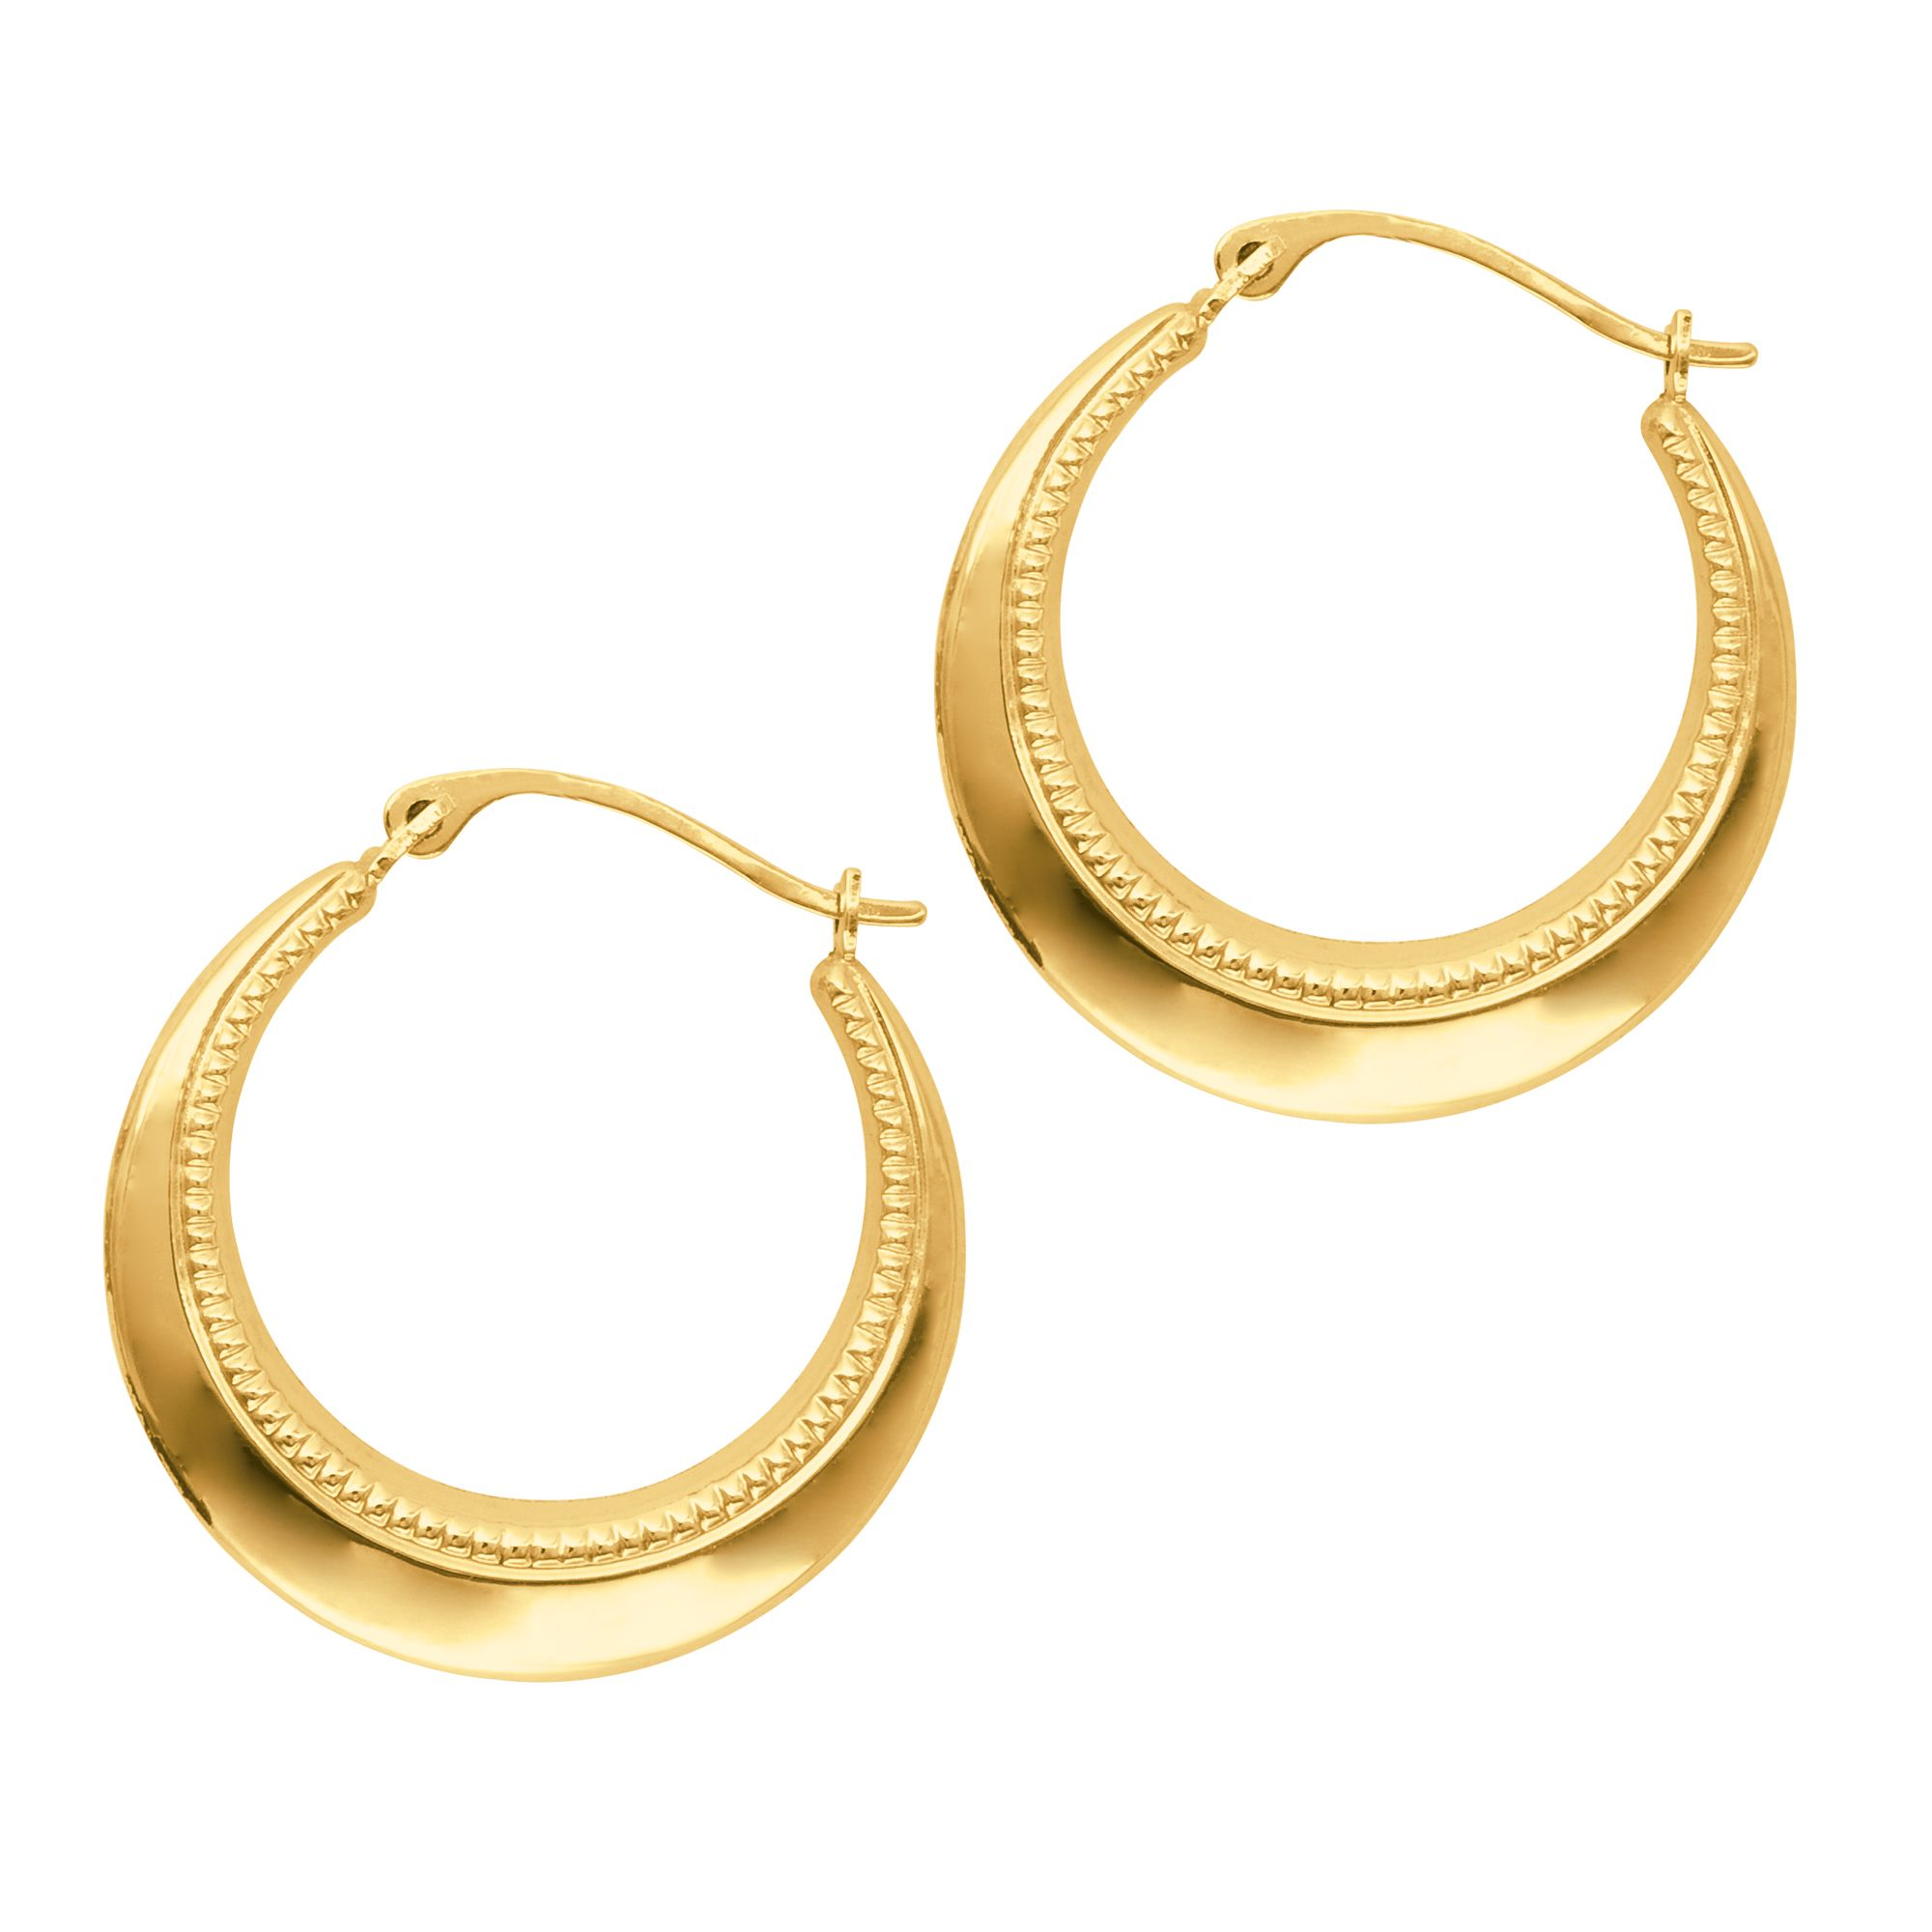 14K Yellow Gold Shiny Graduated Hoop Earrings with Hinged by IcedTime